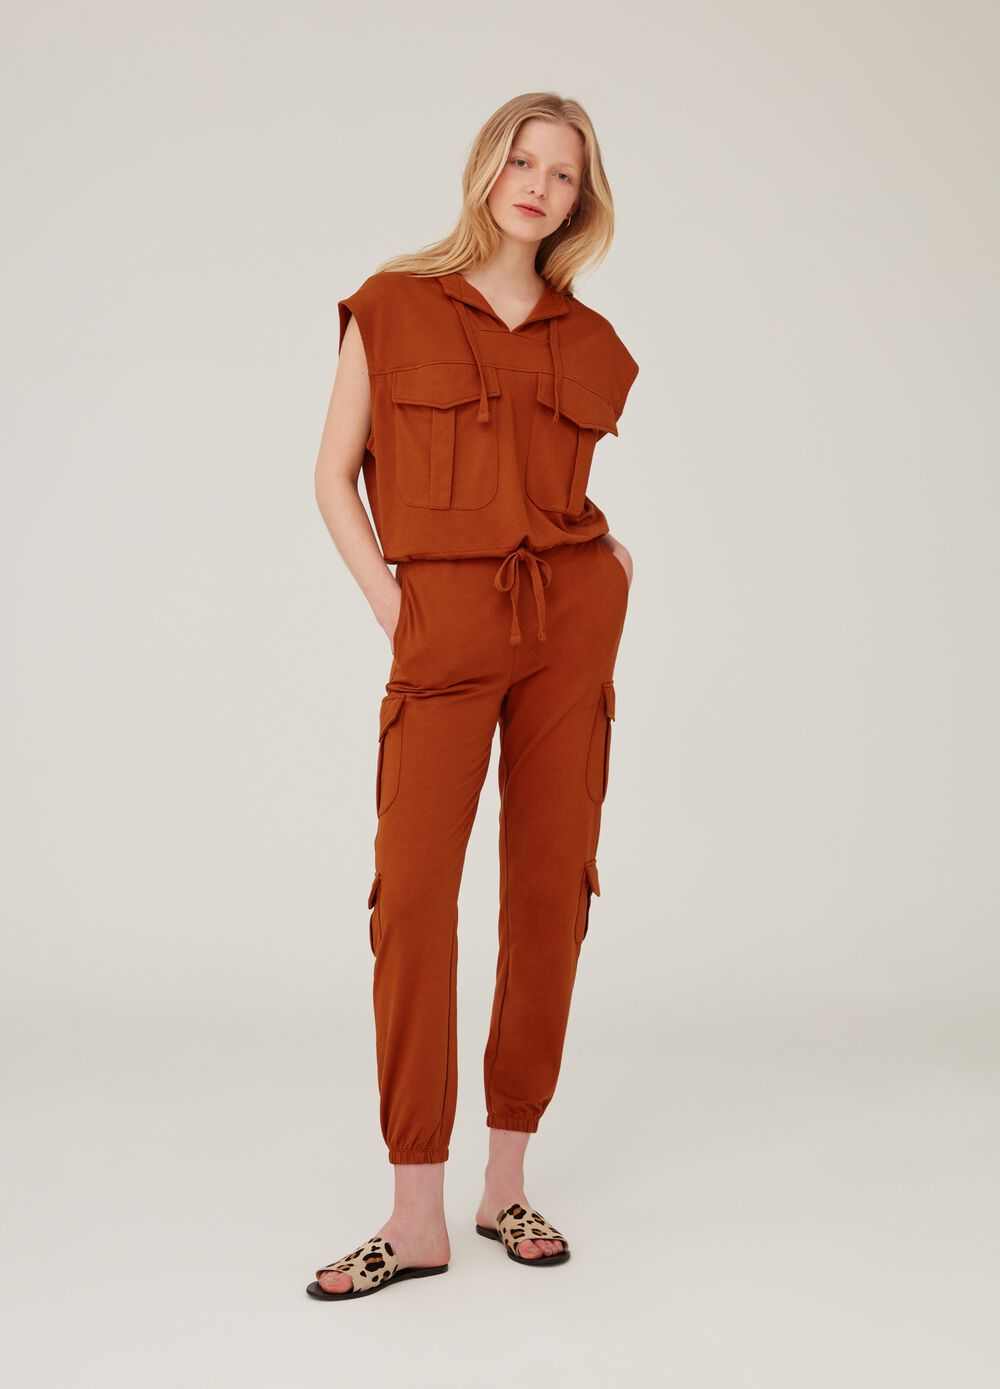 Trousers with elasticated waistband and pockets on the side